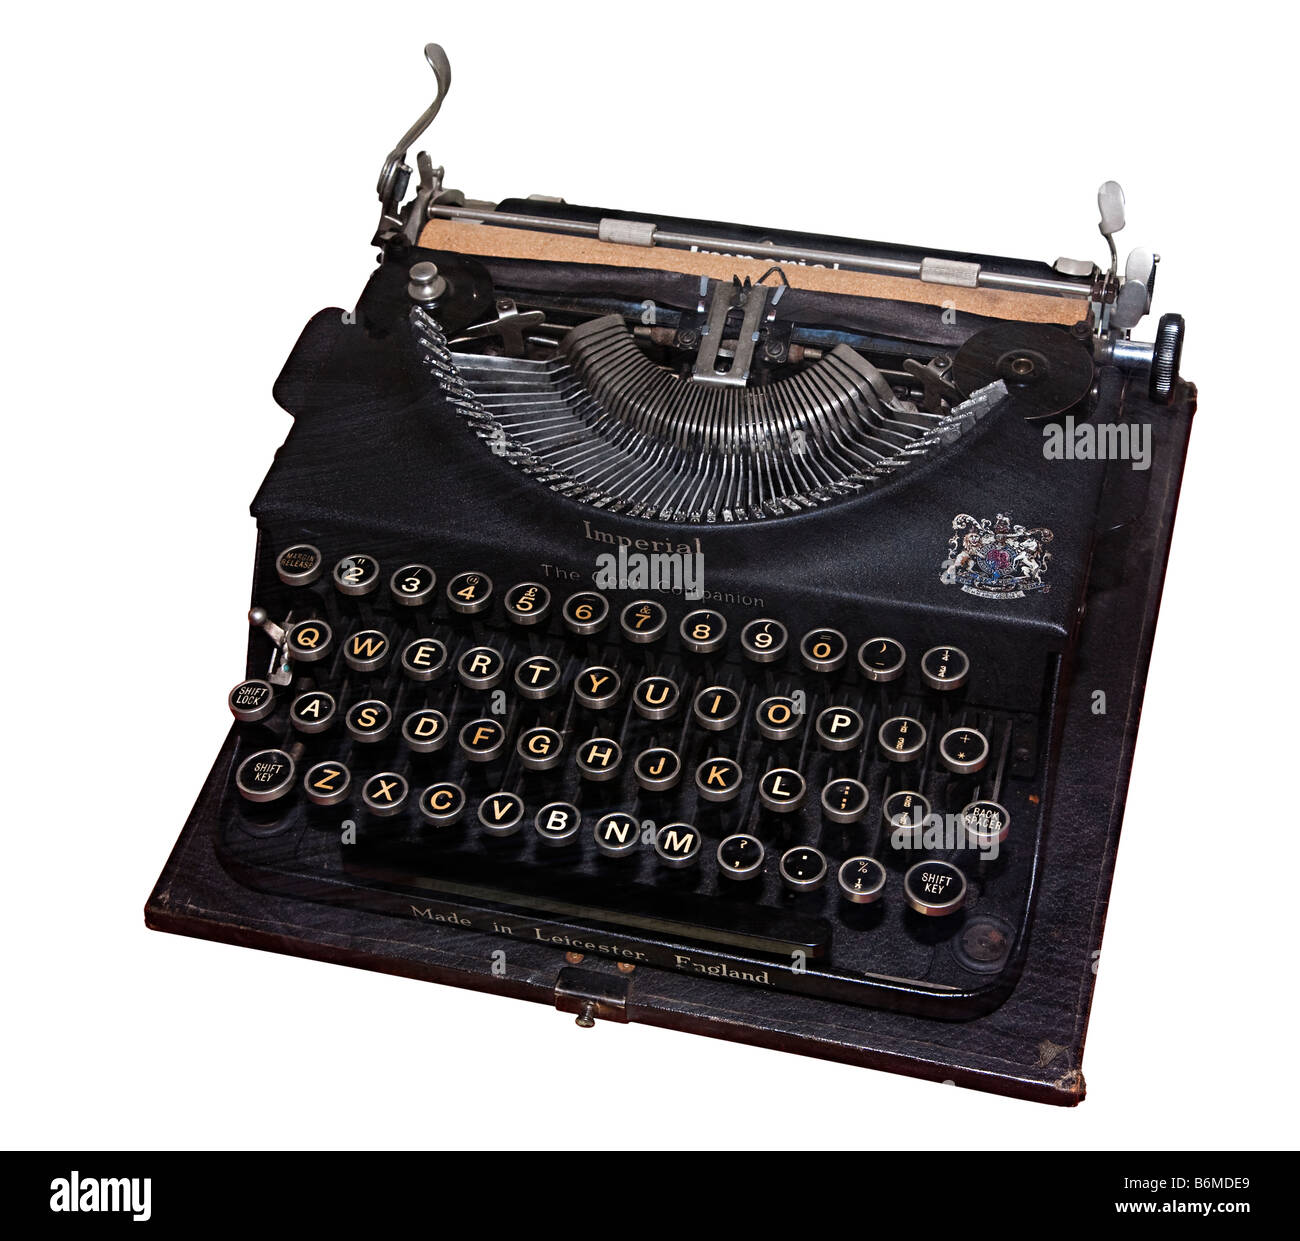 Imperial The Good Companion typewriter - Stock Image